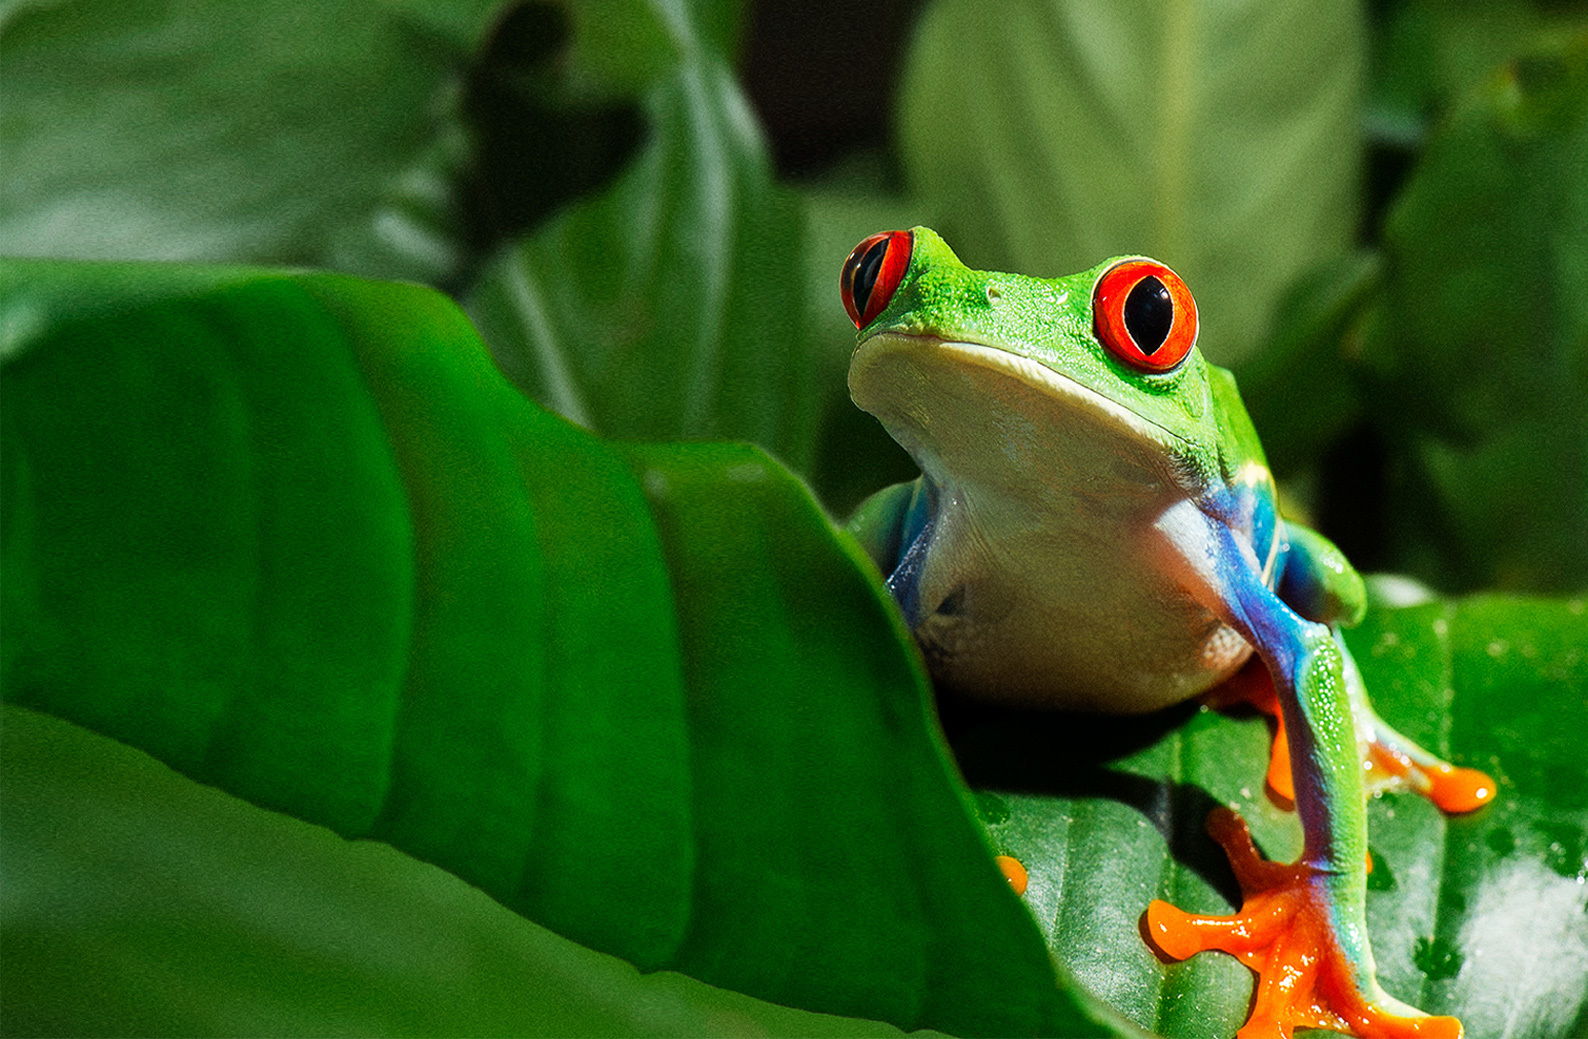 HOP TO VANCOUVER AQUARIUM THIS EASTER FOR AN EGG-UCATIONAL SCAVENGER HUNT